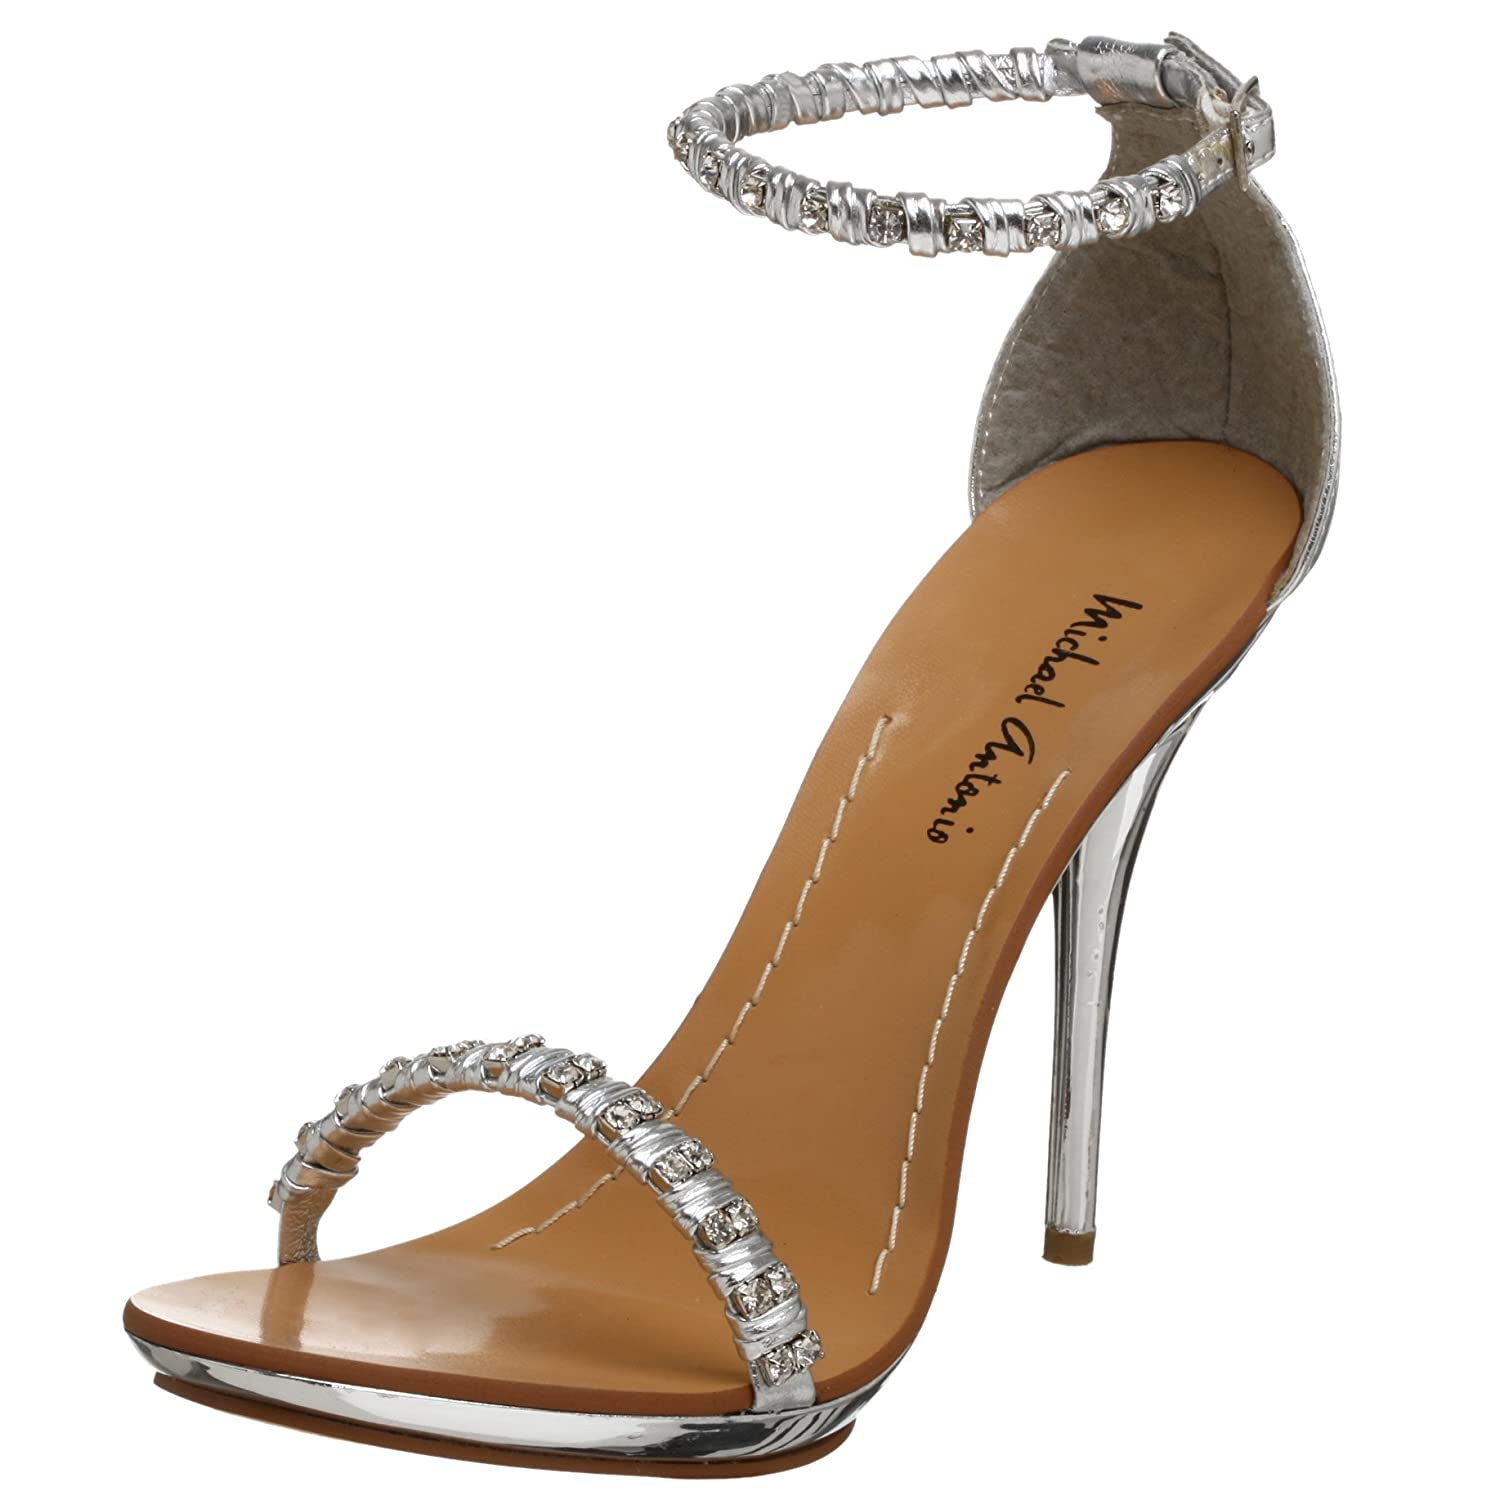 Endless.com: Michael Antonio Women's Touch Dress Sandal: Sandals - Free Overnight Shipping & Return Shipping from endless.com